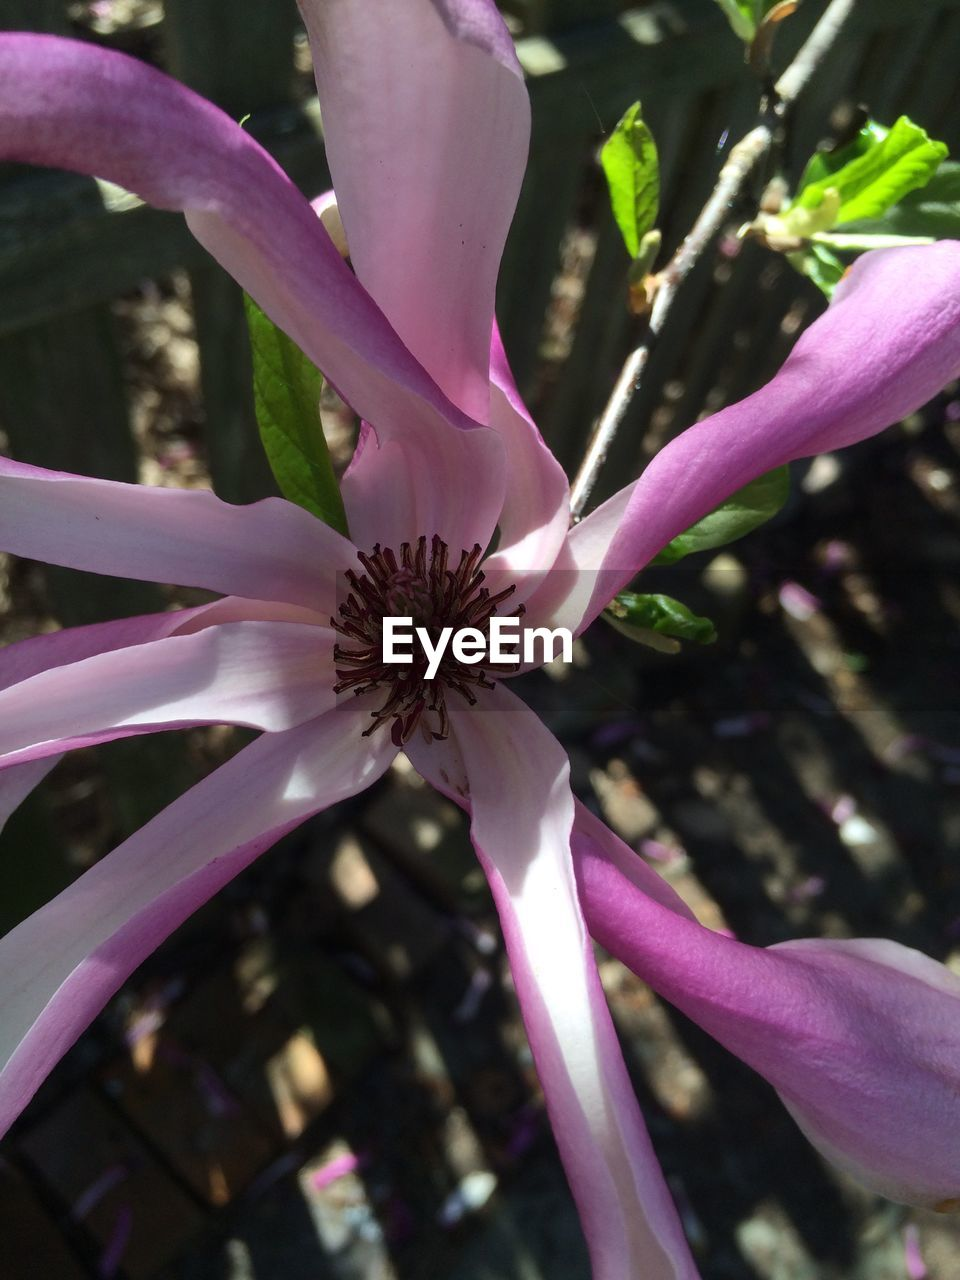 flower, growth, fragility, petal, nature, beauty in nature, freshness, plant, botany, blossom, pink color, close-up, no people, flower head, purple, outdoors, stamen, day, springtime, blooming, tree